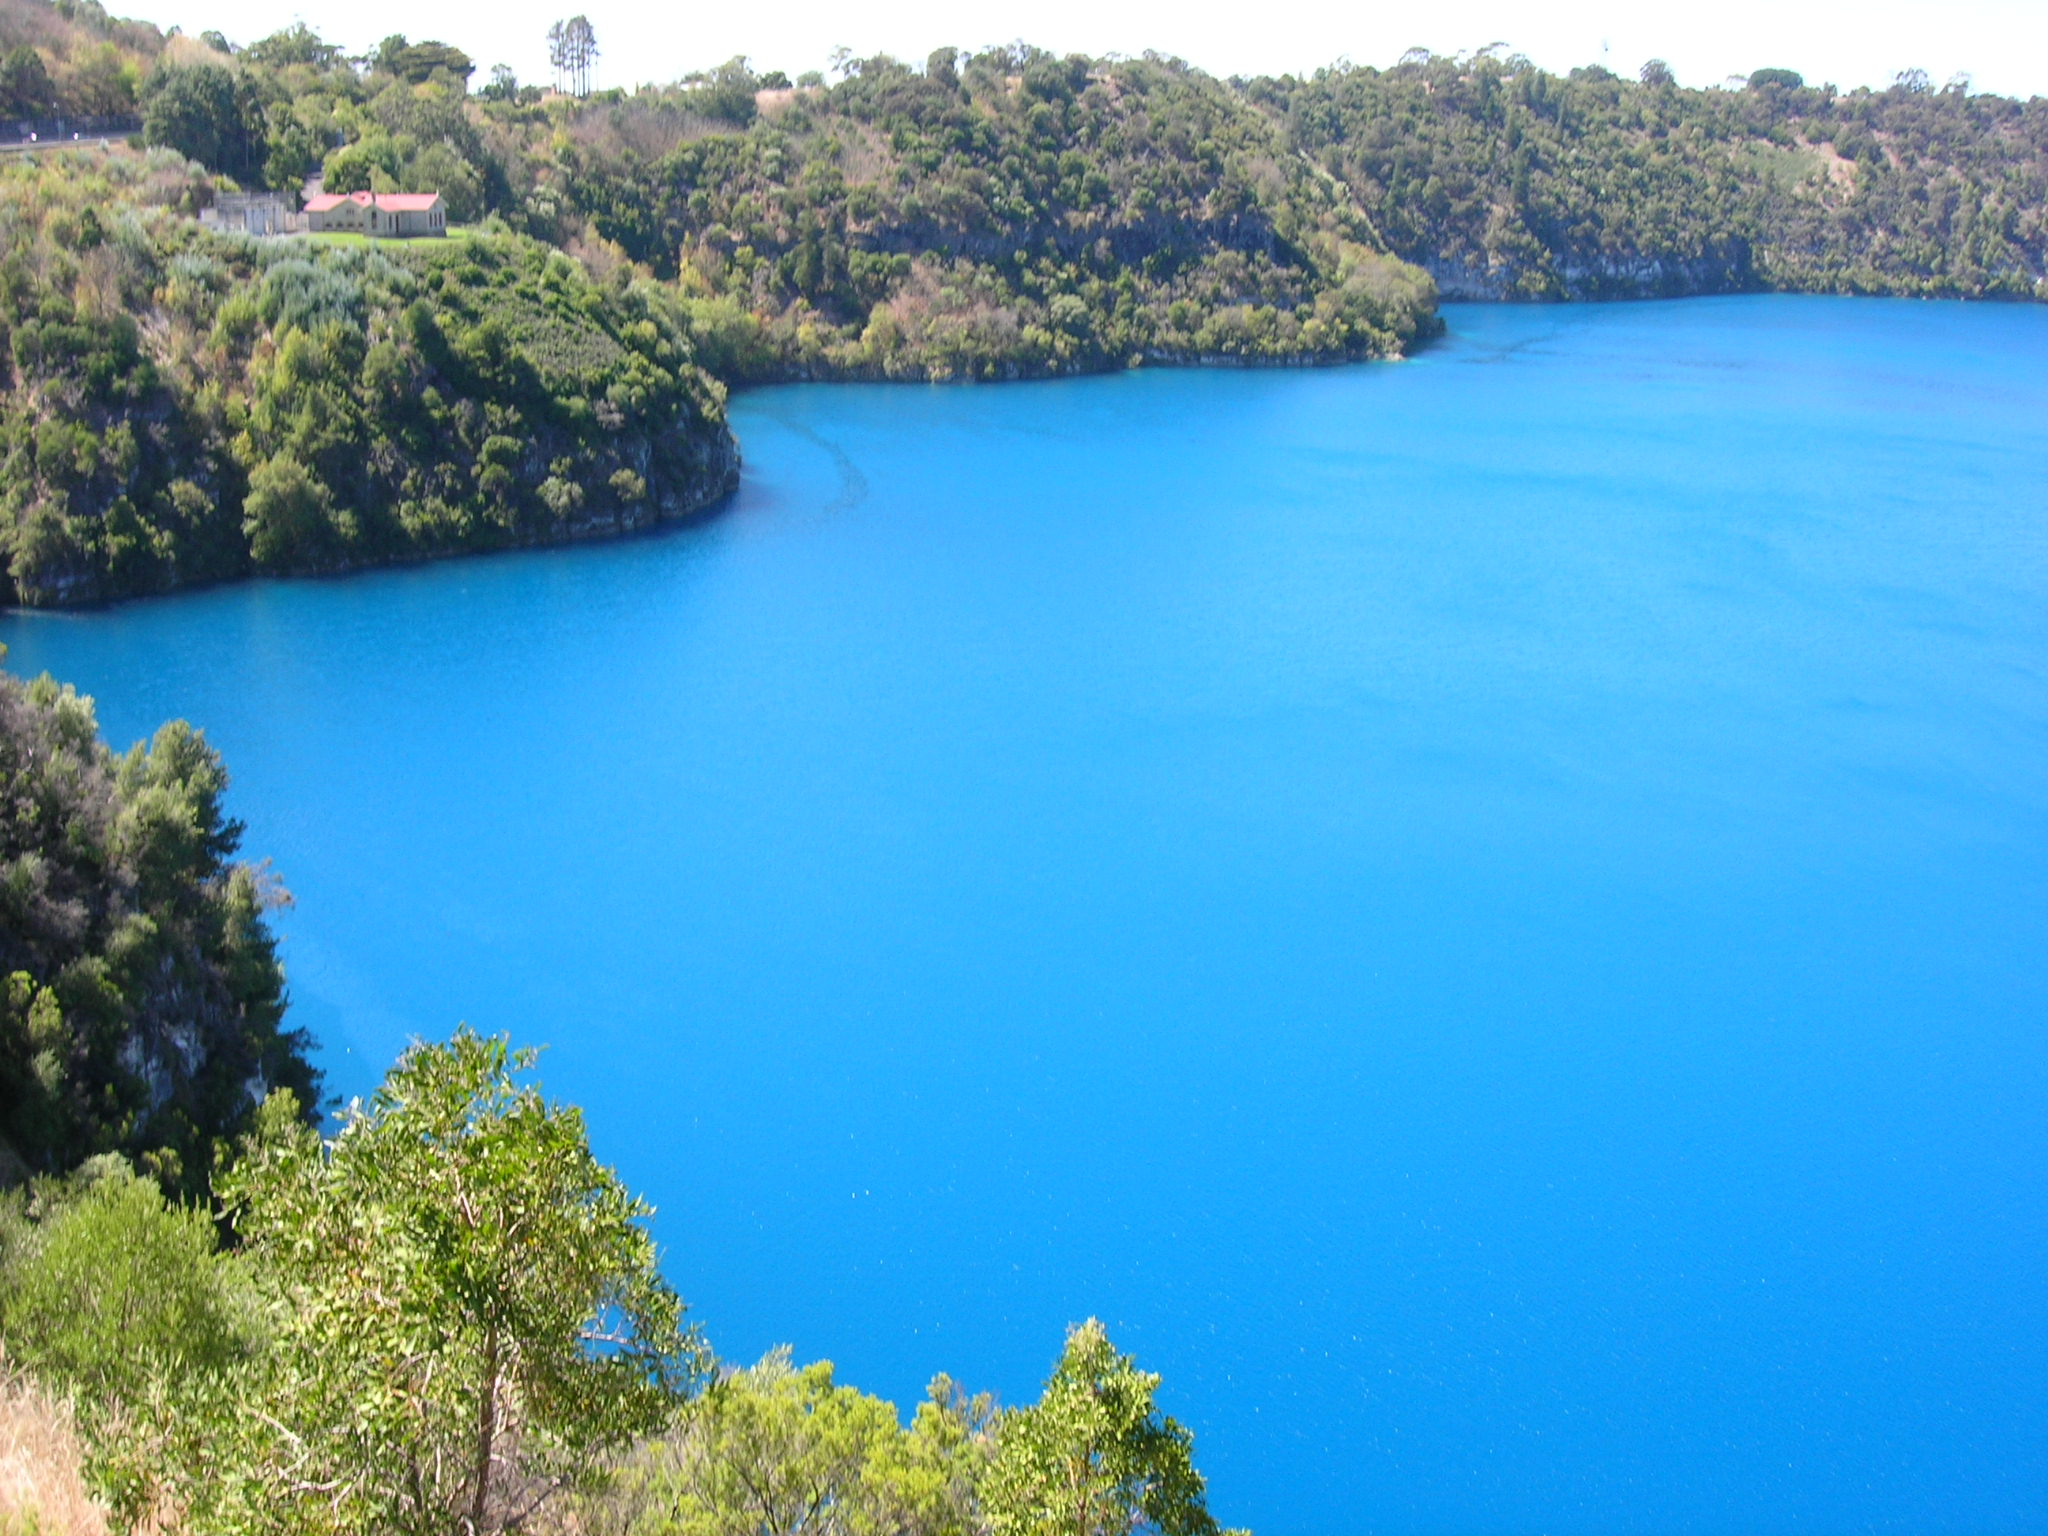 Mount Gambier Australia  city photo : Description Blue Lake, Mount Gambier